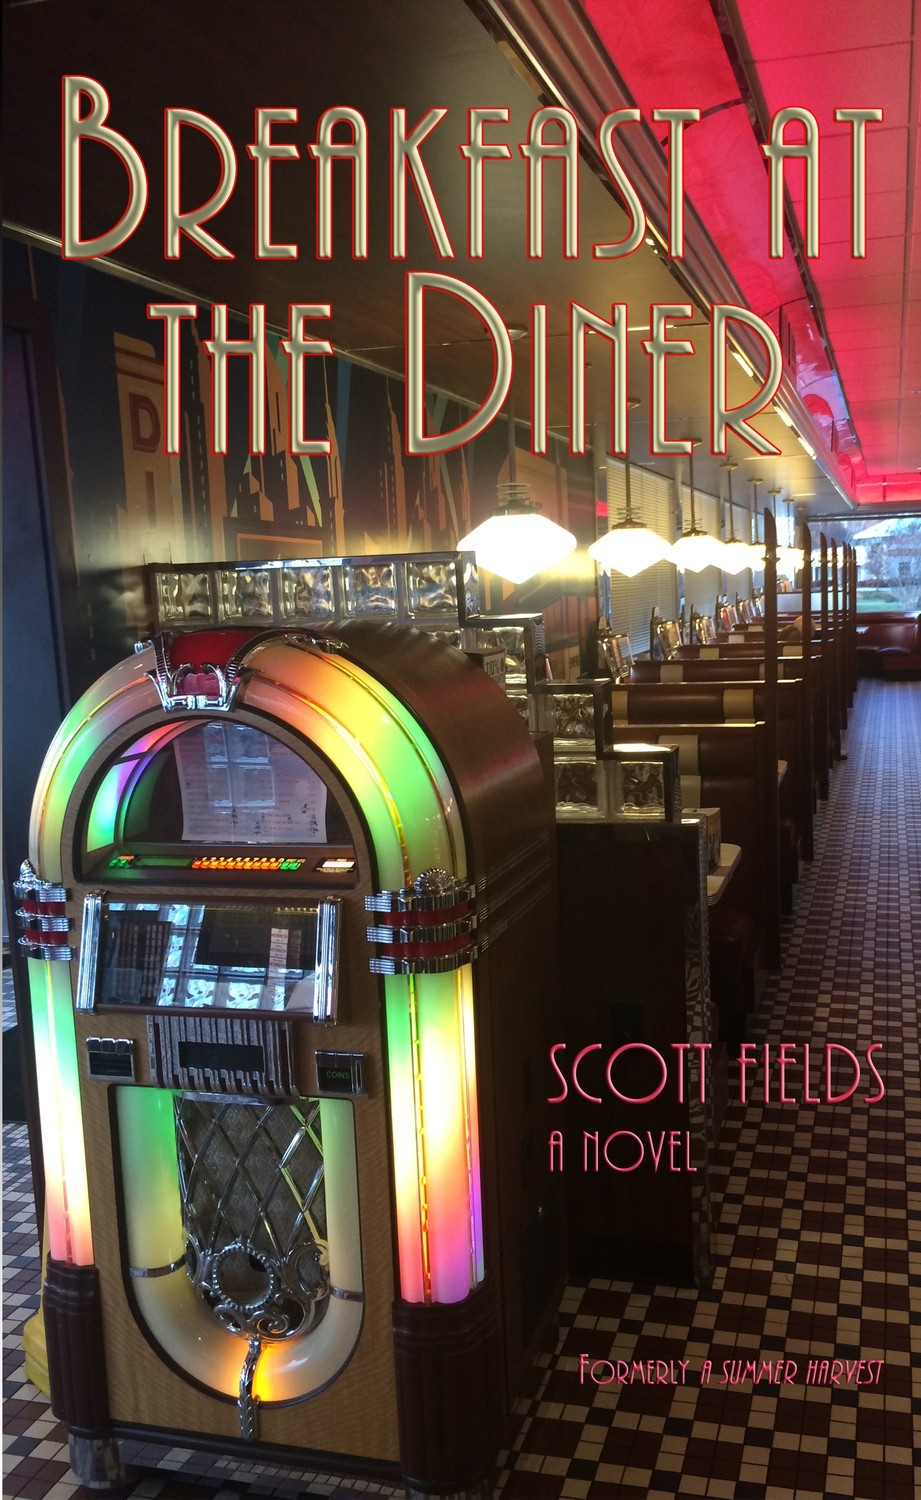 Breakfast at the Diner by Scott Fields